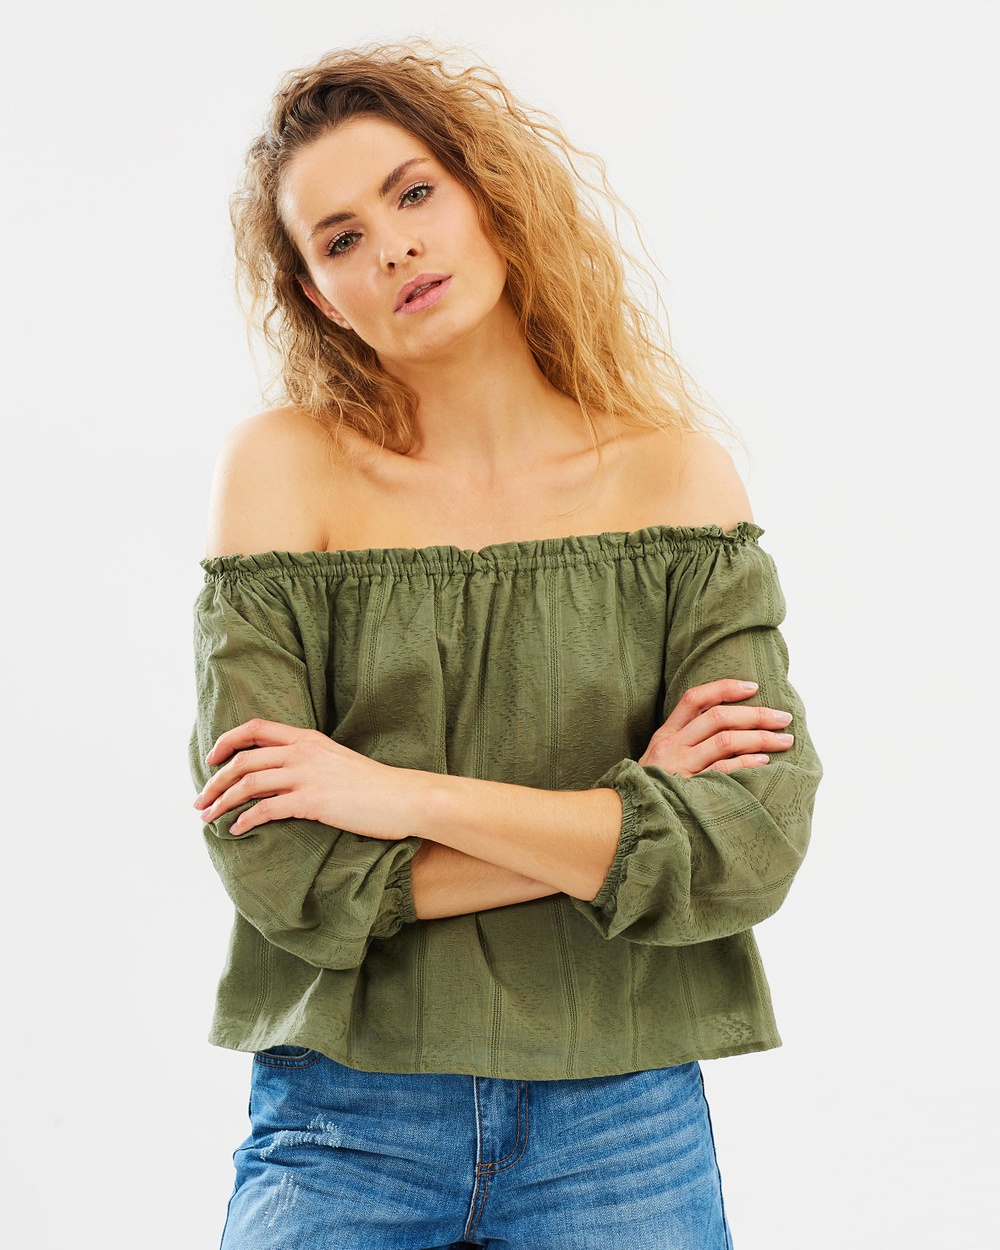 All About Eve Vienna Top Tops Khaki Green Vienna Top